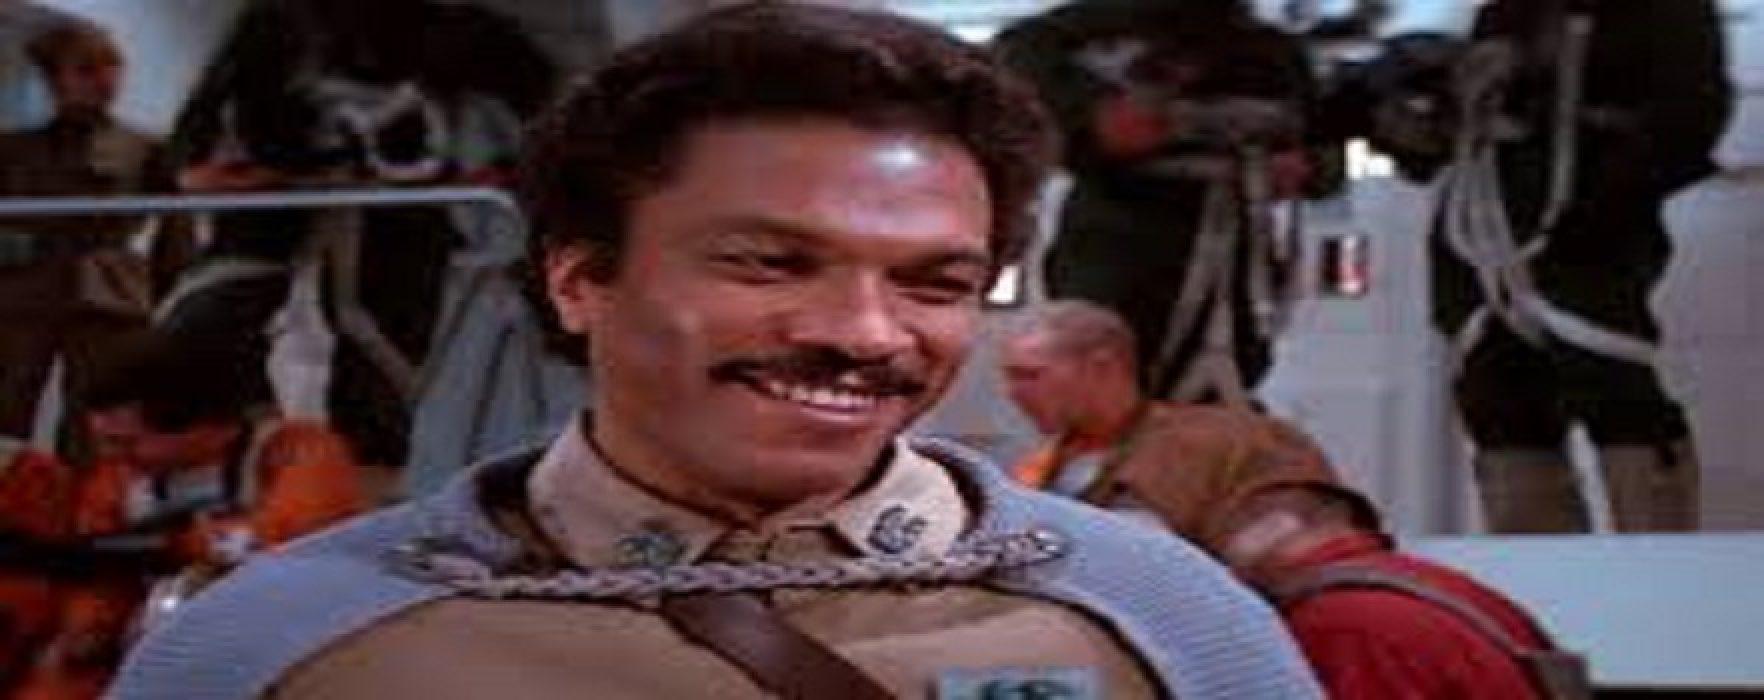 Billy Dee Williams Is Back for Star Wars Episode IX